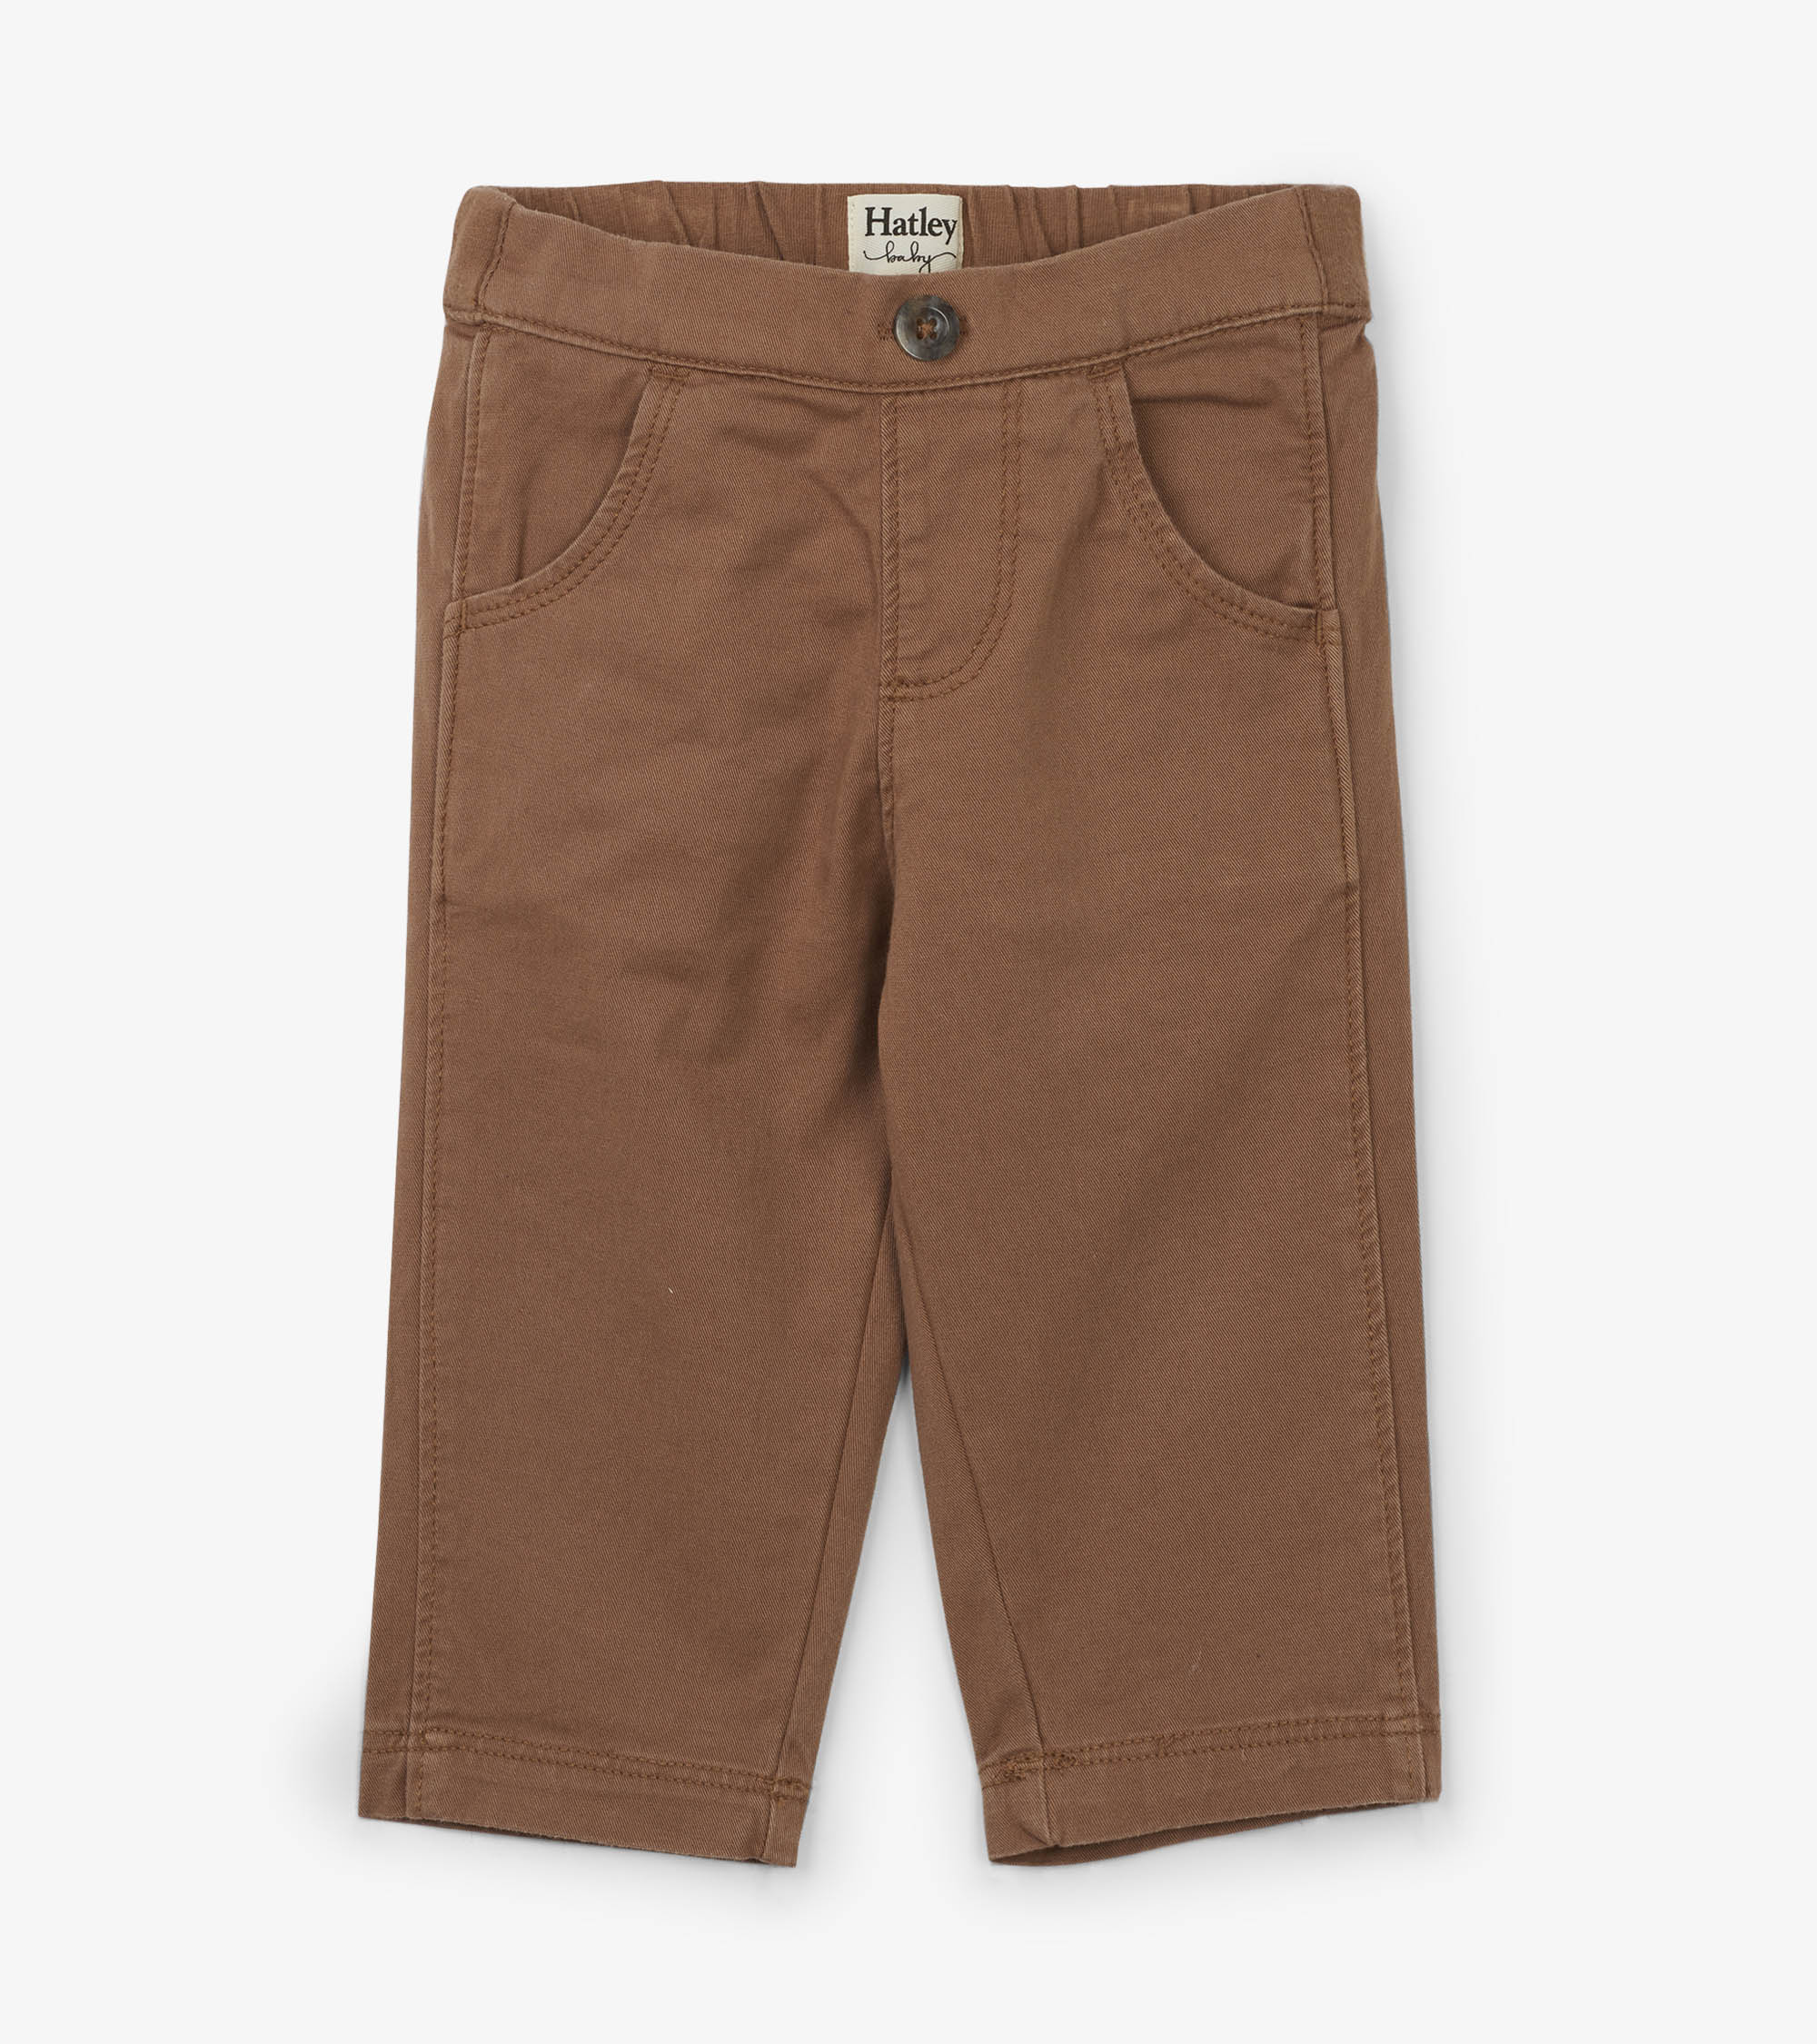 NOW £11  Hatley - Tan Baby Trousers (Was £22)